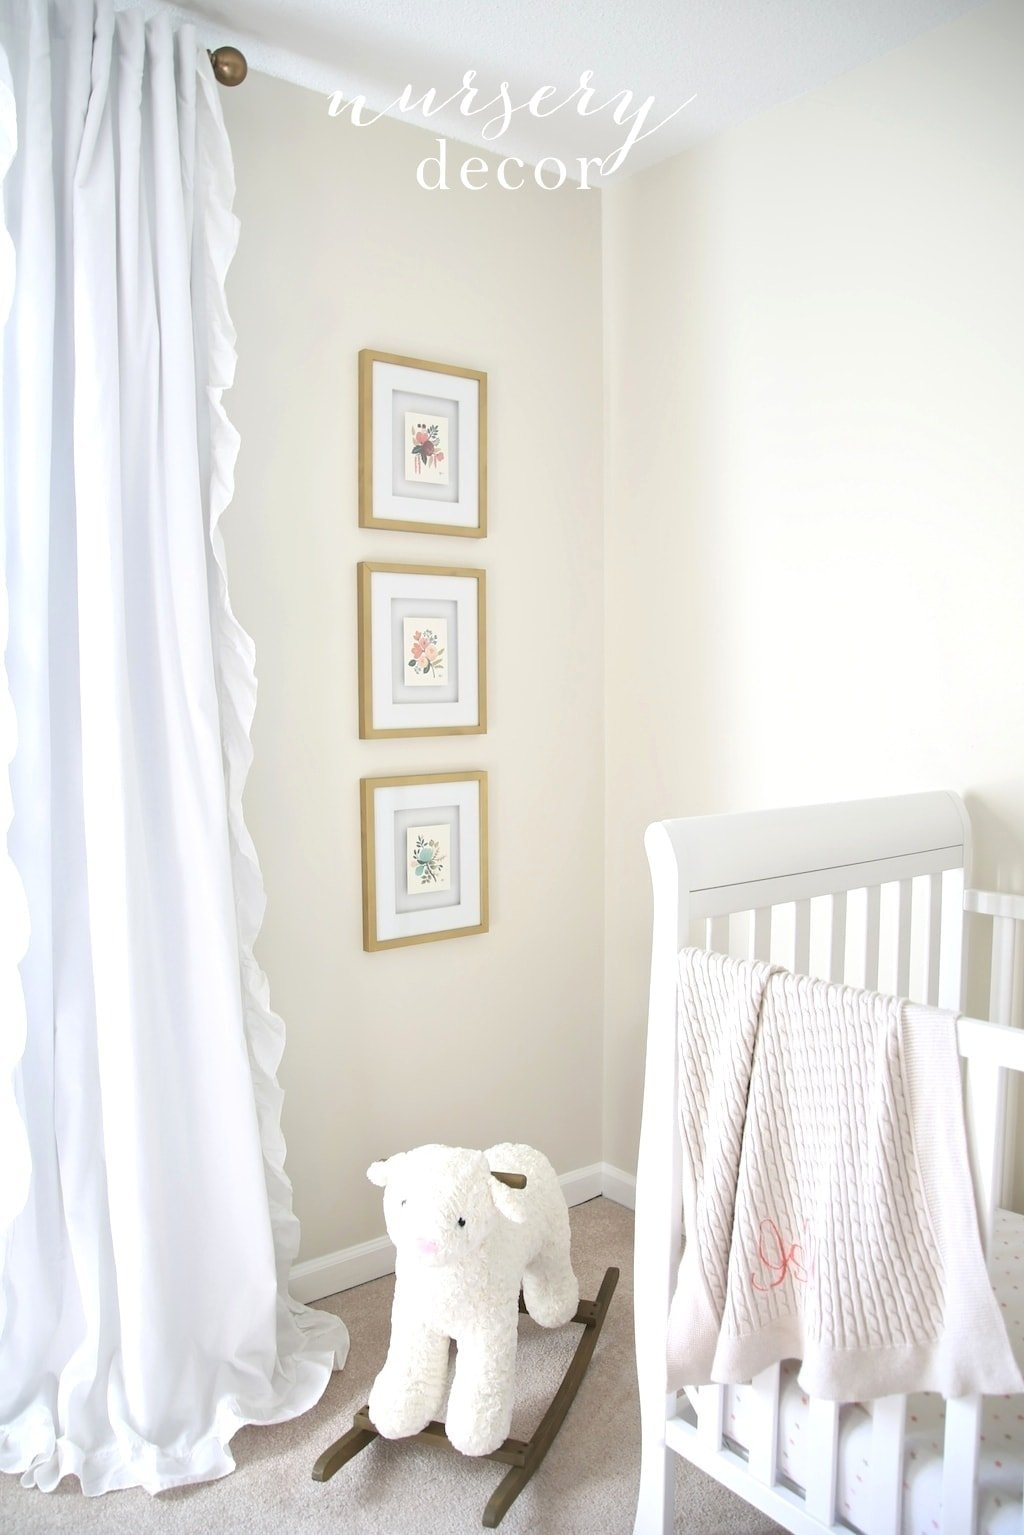 Isla's Nursery Decor